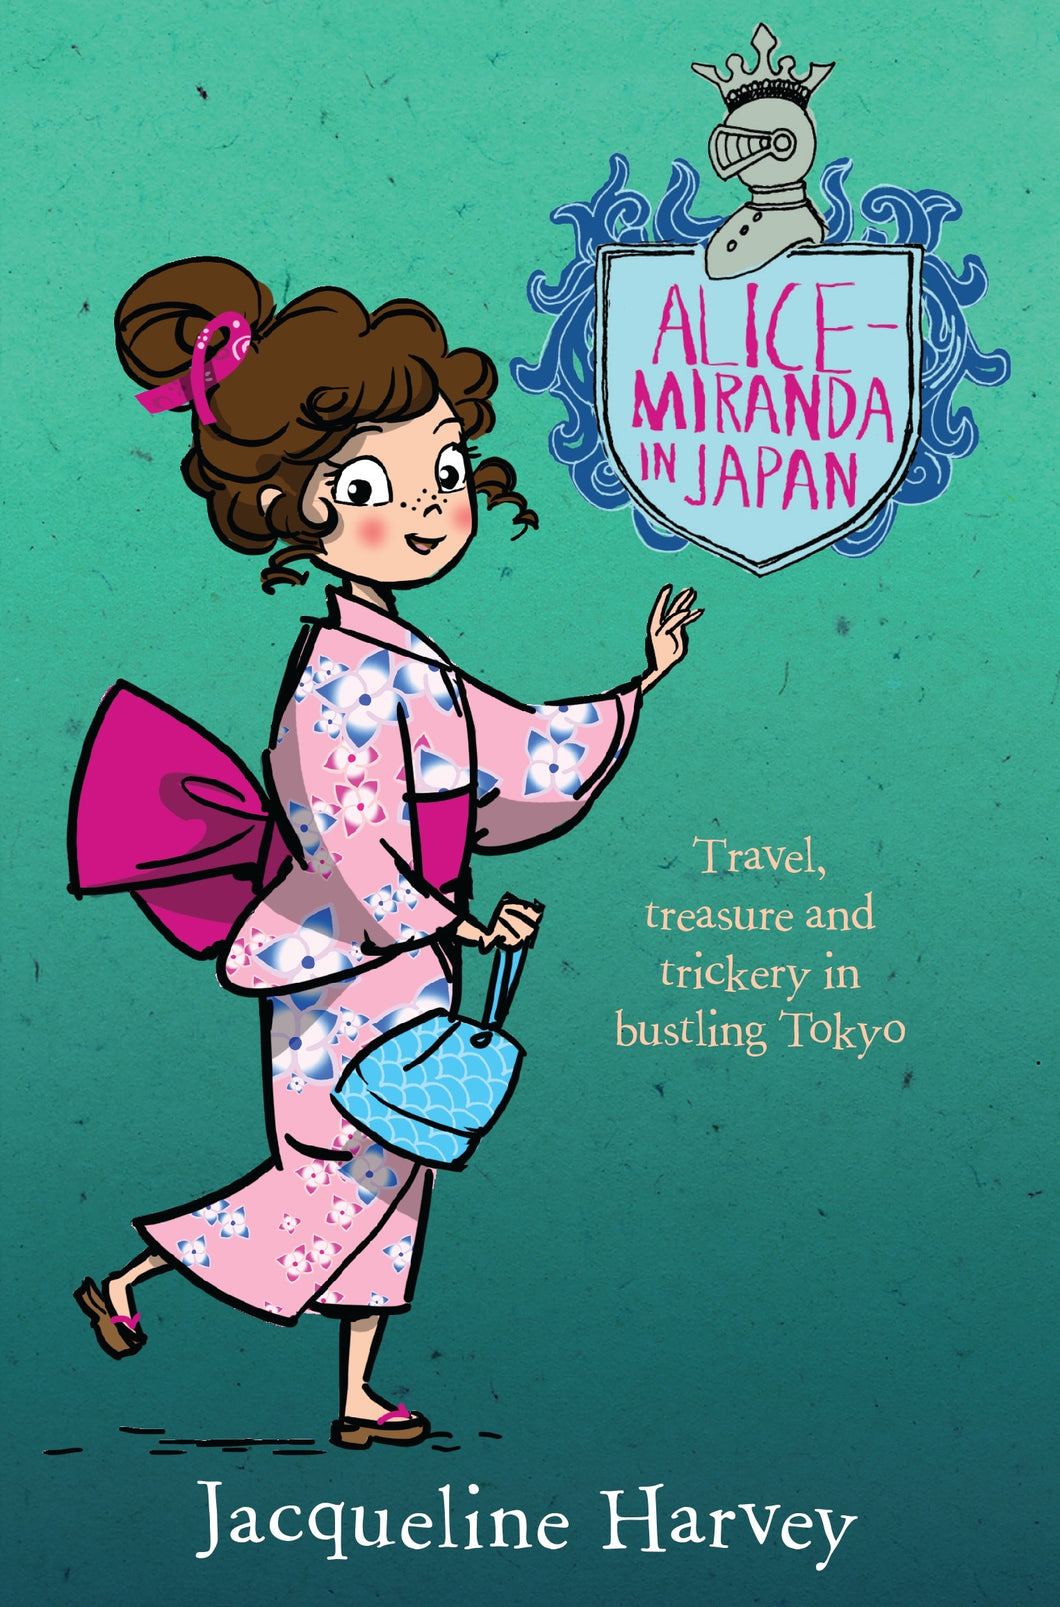 Alice-Miranda in Japan (Book #9) by Jacqueline Harvey